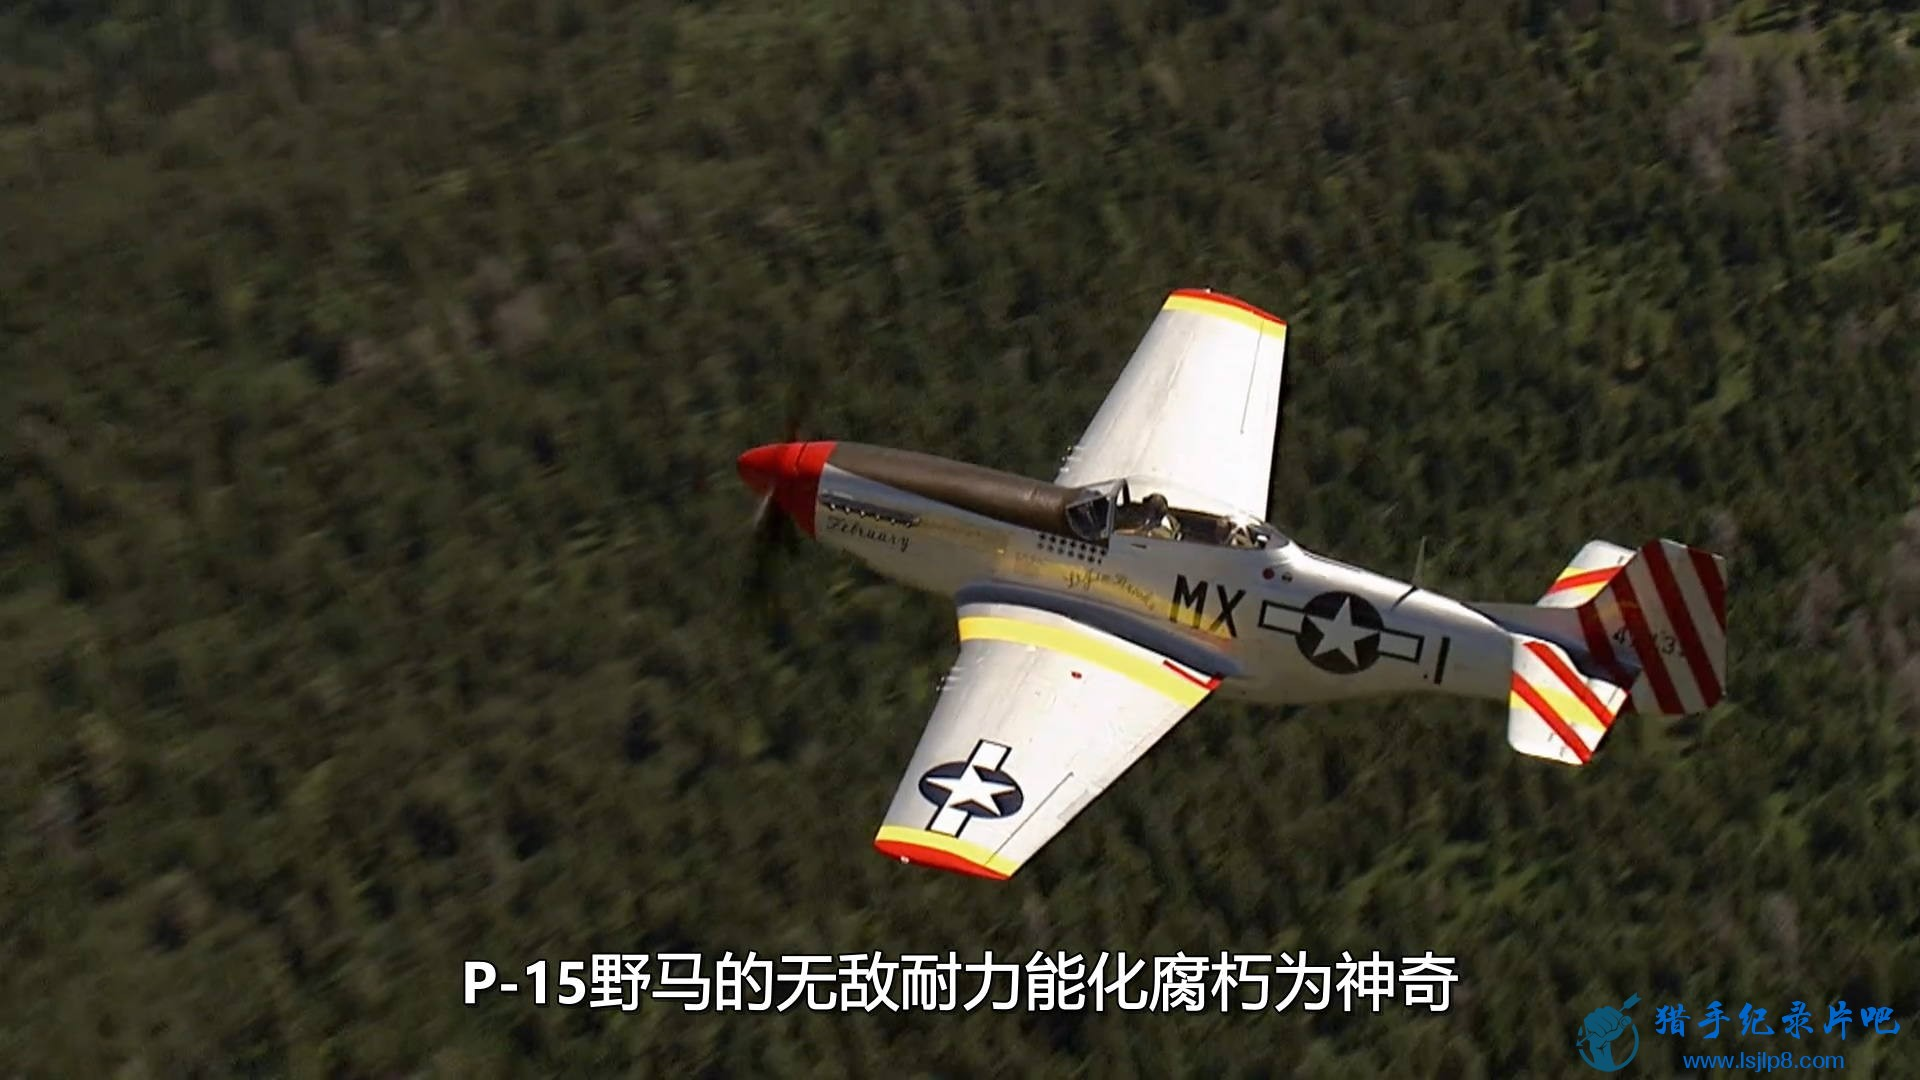 air.warriors.s04e03.p-51.mustang.1080p.web.h264-underbelly.mkv_20200707_152412.6.jpg